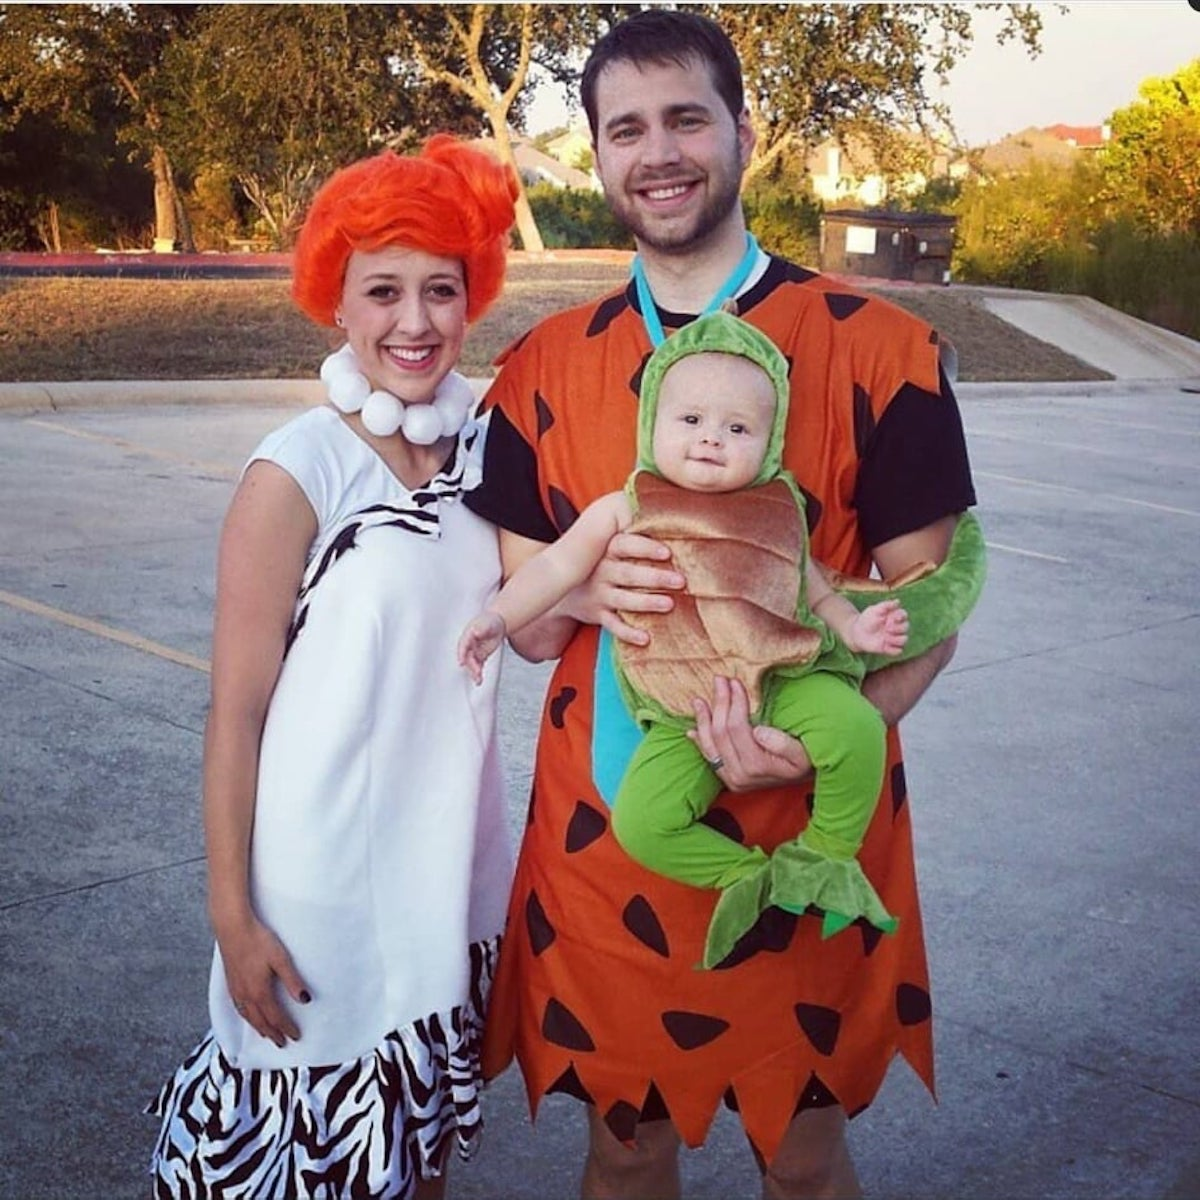 Family wearing Flinstones costume stands by each other and smiles.